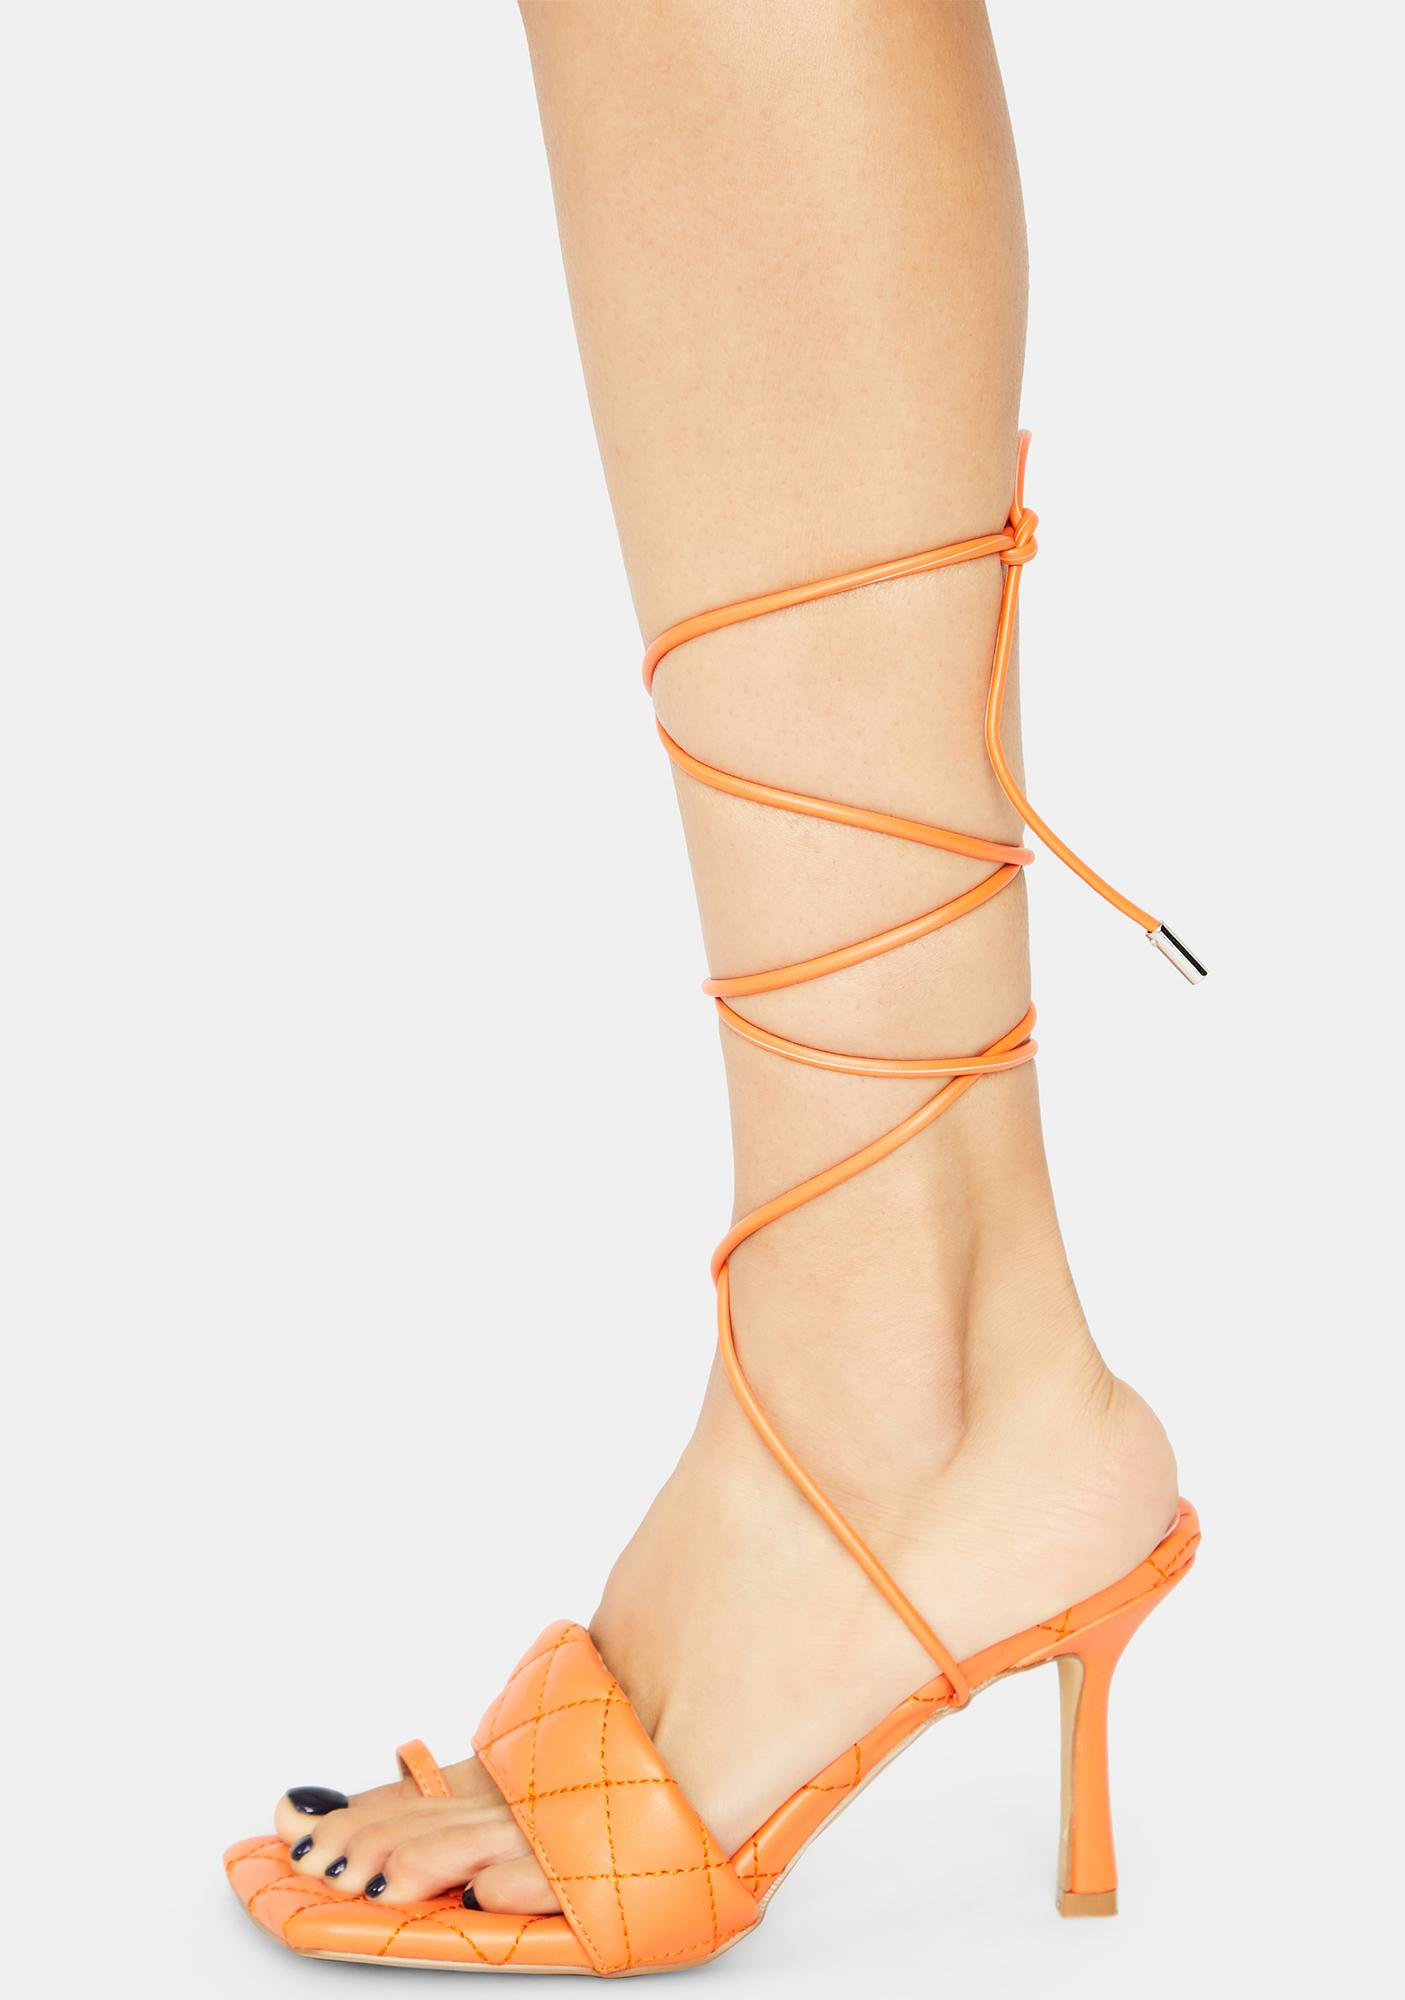 Citrus Risk It All Quilted Lace Up Kitten Heels